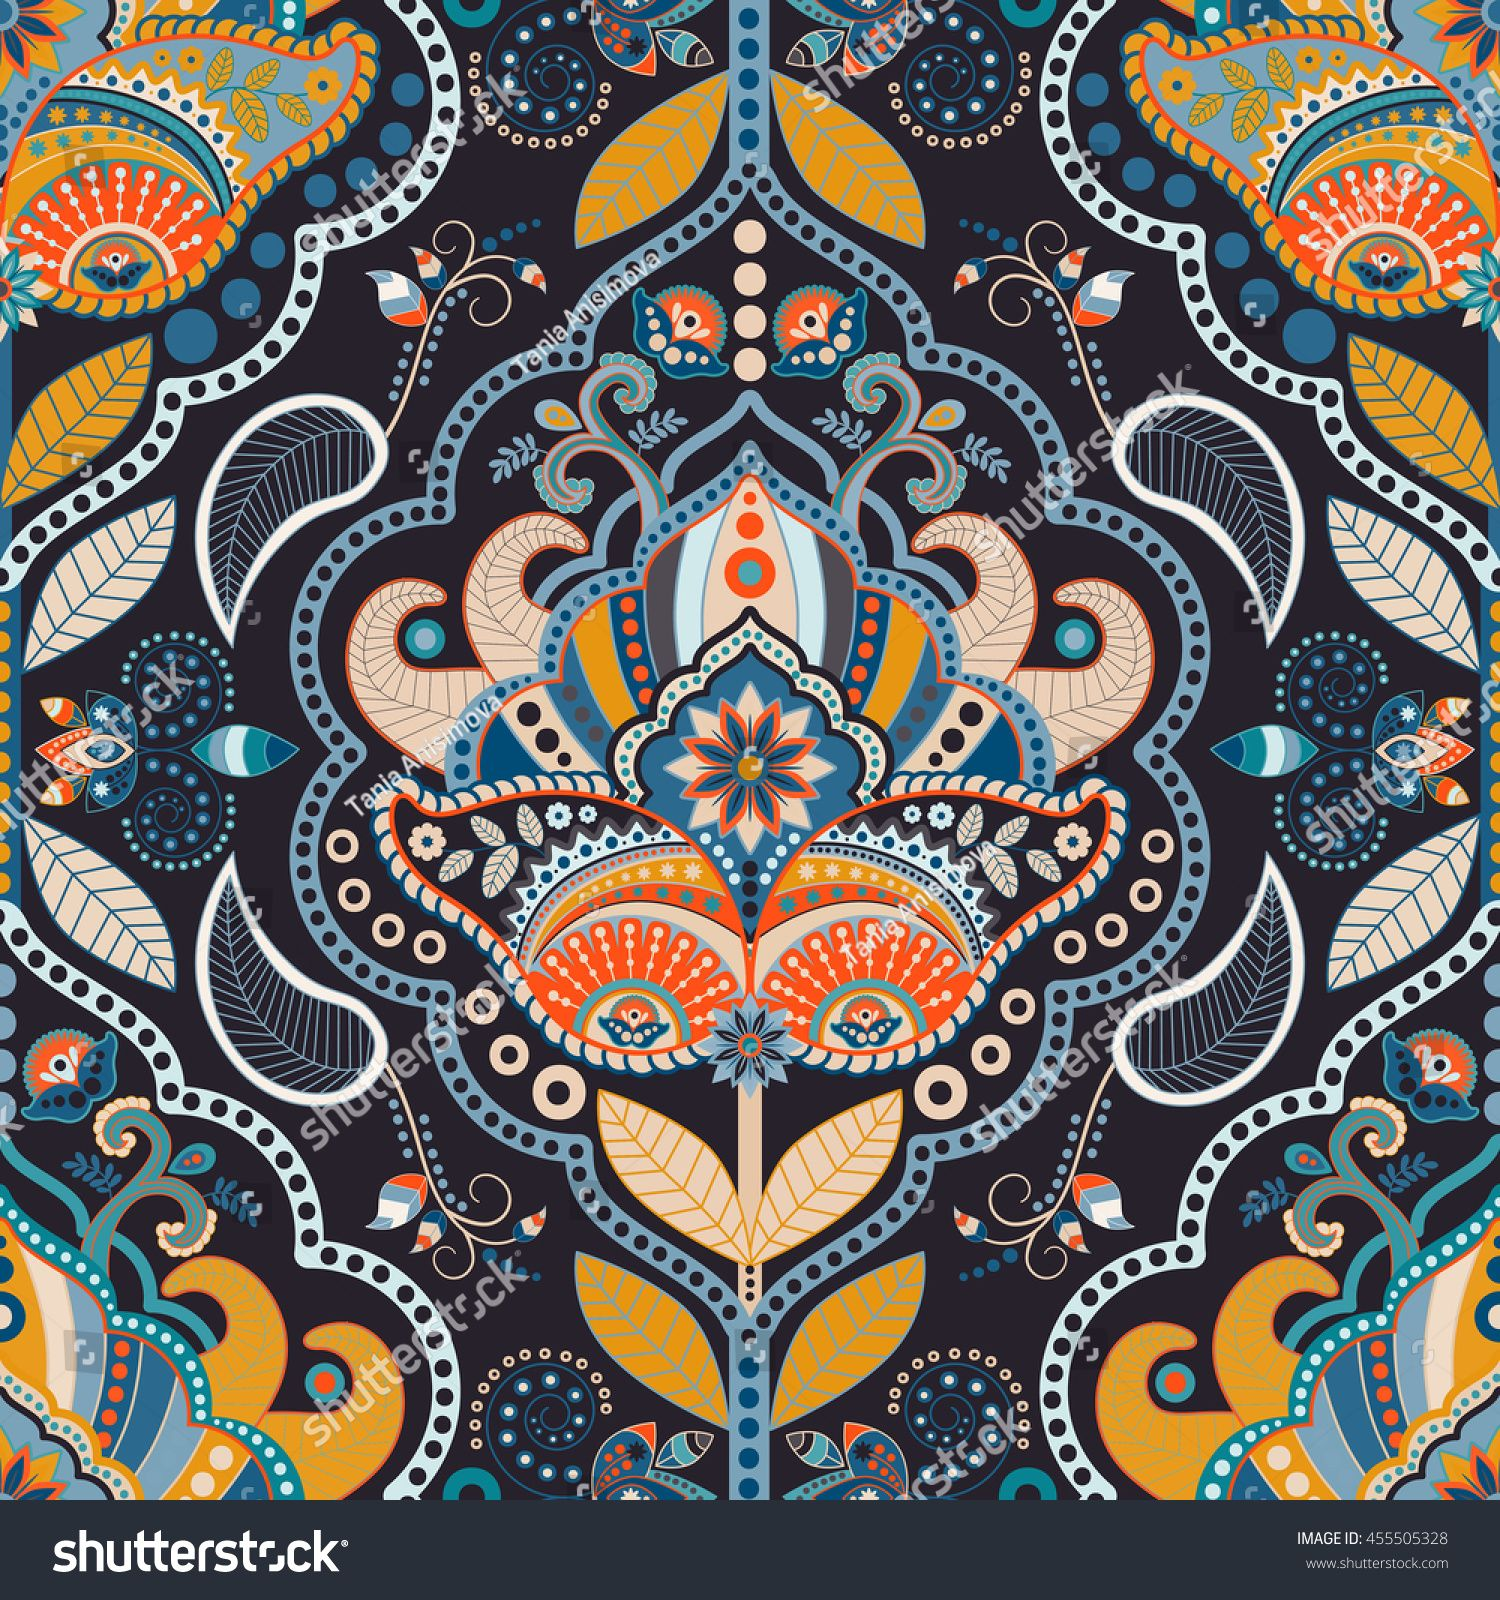 Paisley Floral Seamless Pattern Dark Backdrop With Indian Decorative Elements